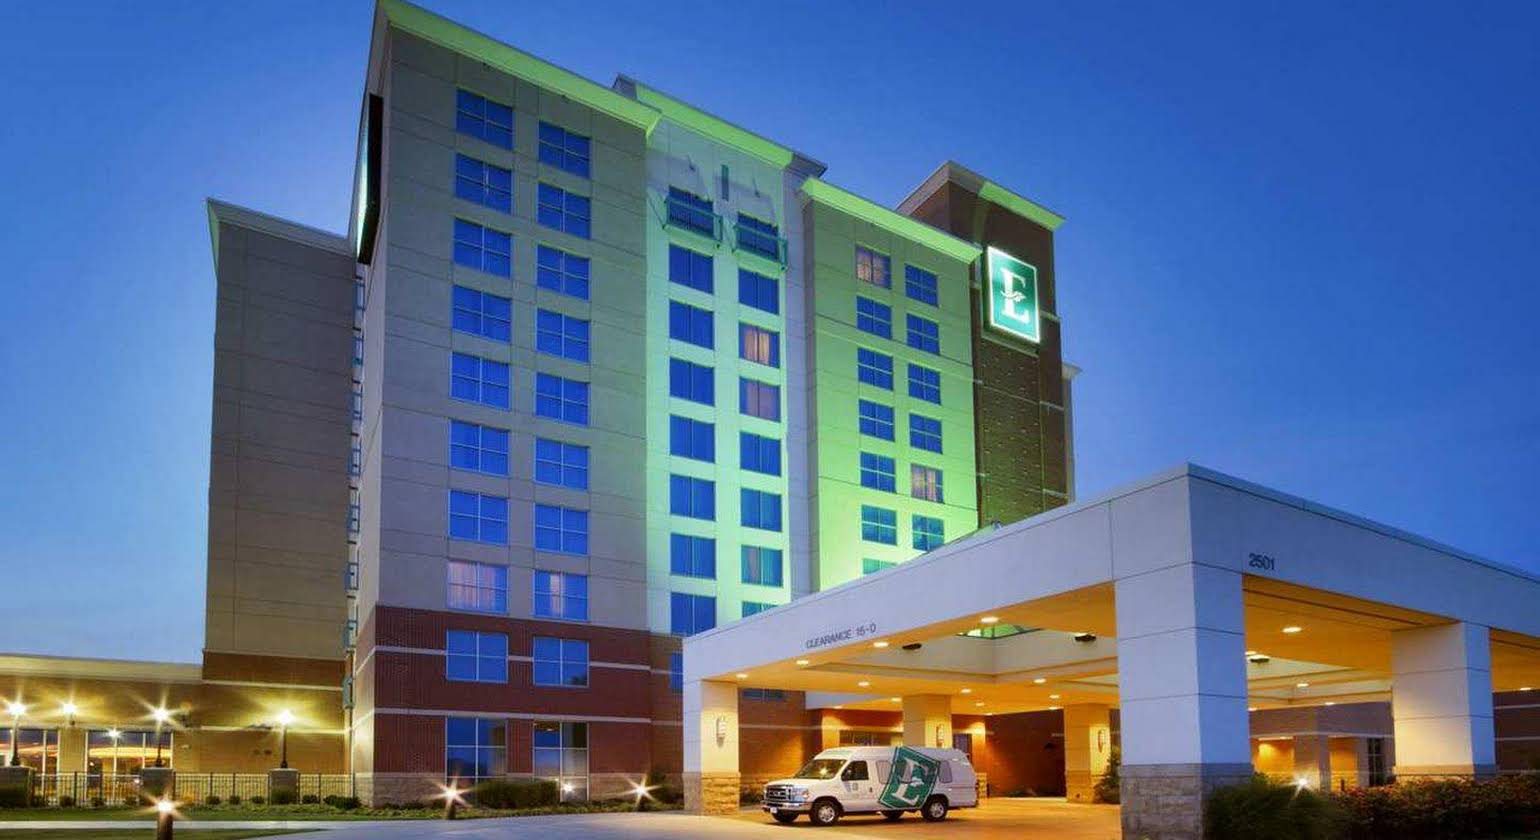 Embassy Suites Norman - Hotel and Conference Center